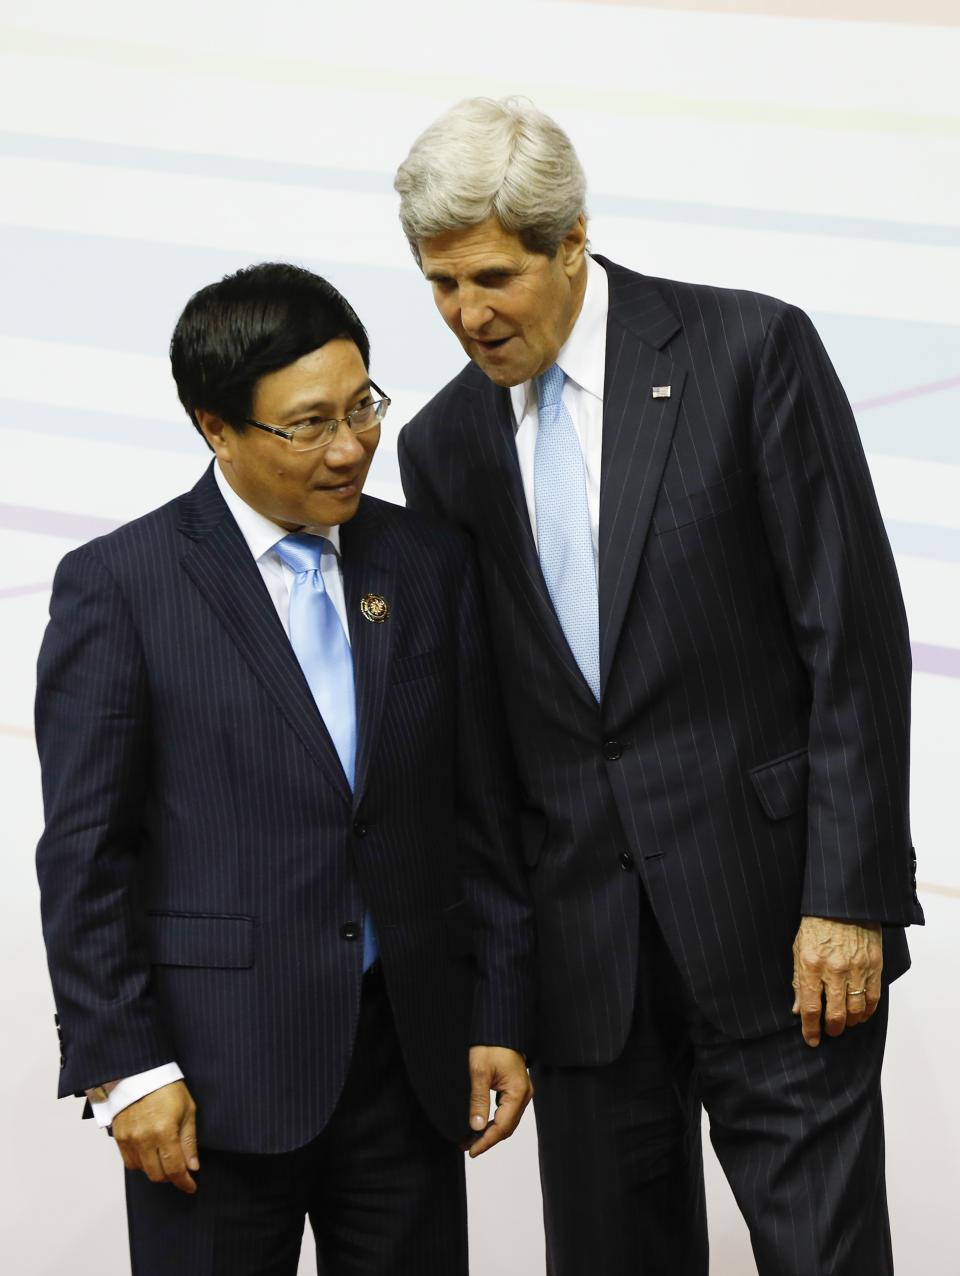 U.S. Secretary of State John Kerry, right, chats with Vietnam's Foreign Minister Pham Binh Minh during a group photo session at the 3rd East Asia Summit (EAS) Foreign Ministers' Meeting in Bandar Seri Begawan, Brunei, Tuesday, July 2, 2013. (AP Photo/Vincent Thian)